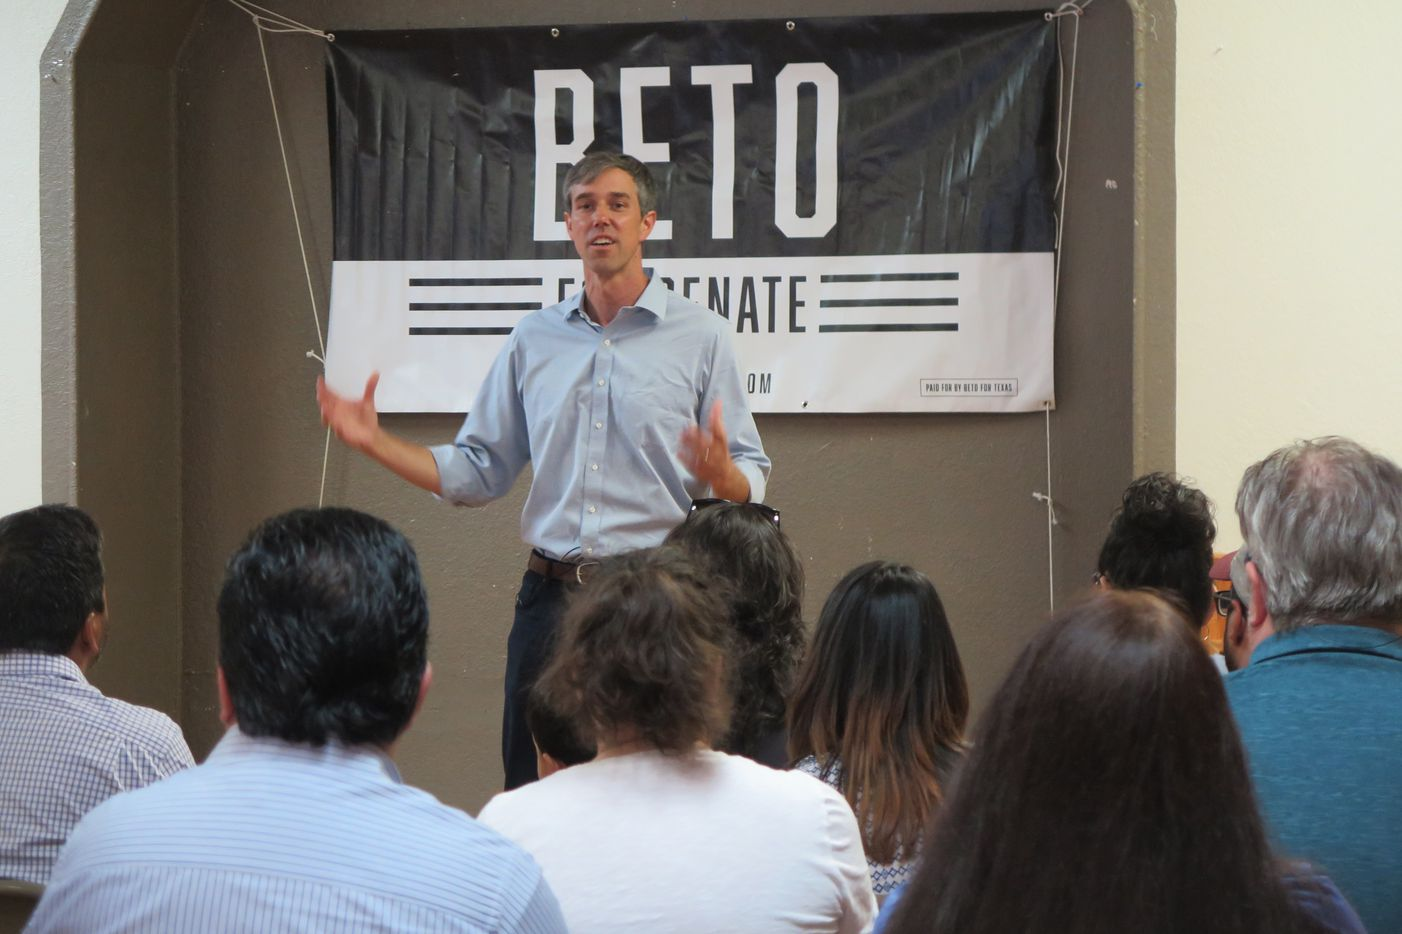 Beto O'Rourke stumps in Fort Stockton, Texas, on the second-day of his 34-day driving tour.